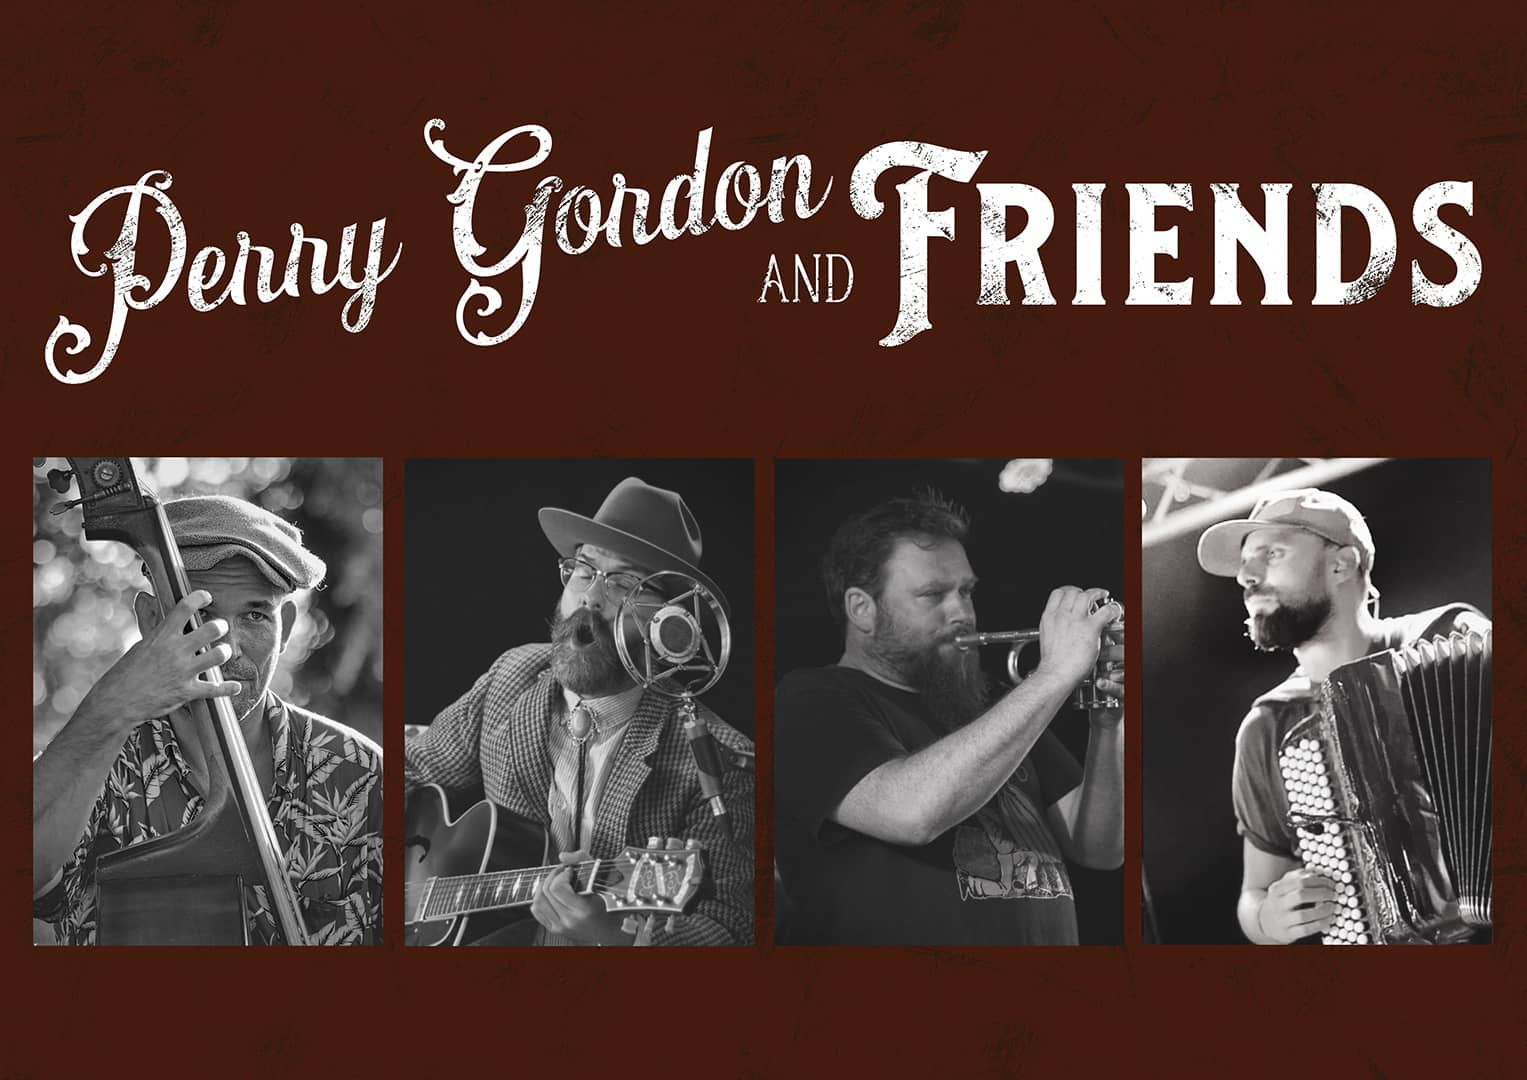 perry gordon and friends